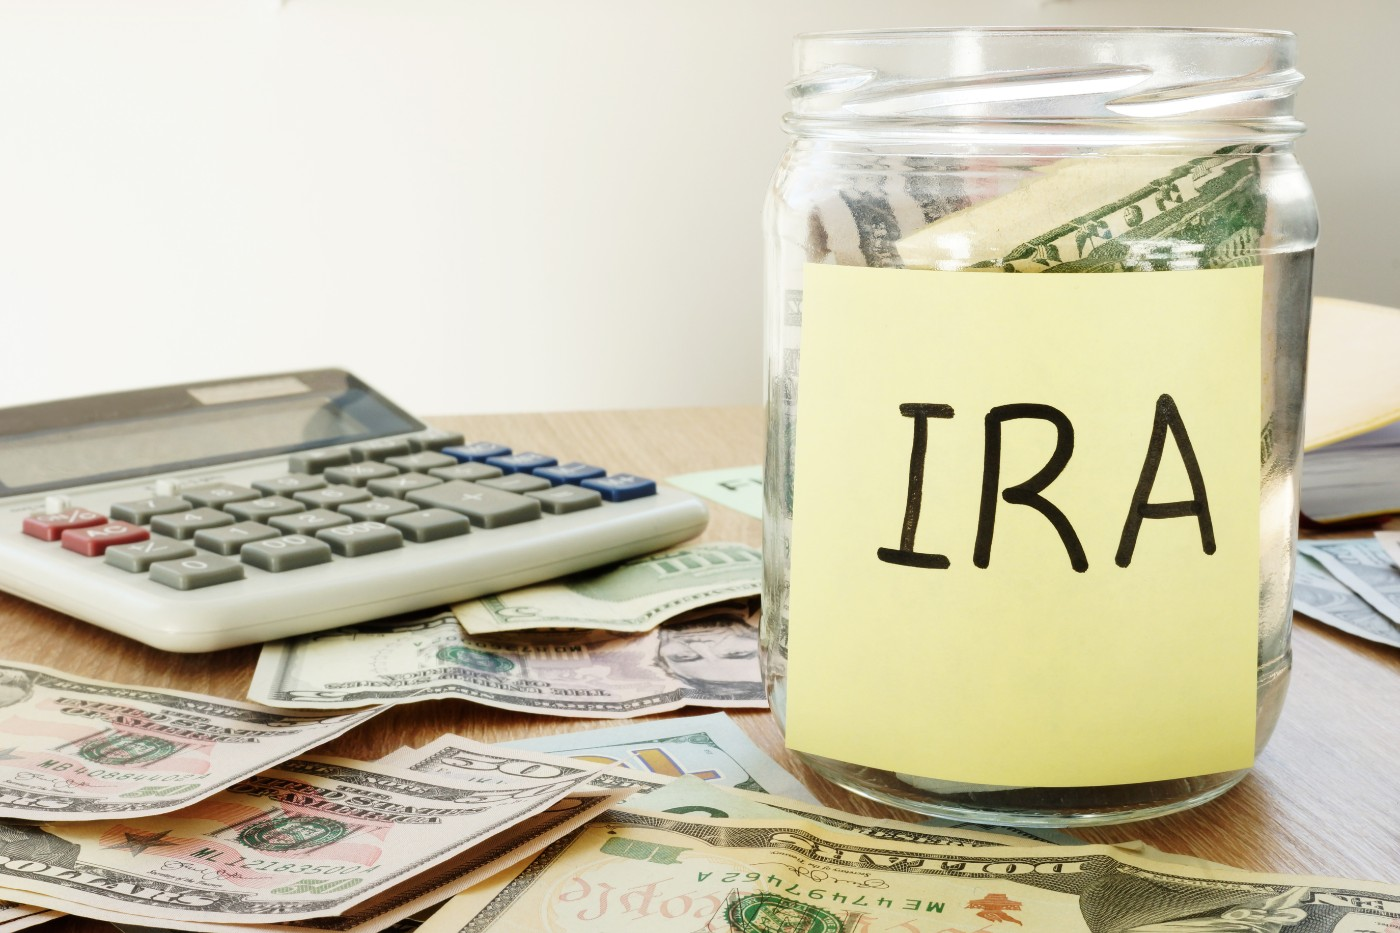 https://tickertapecdn.tdameritrade.com/assets/images/pages/md/Roth IRA contribution limits, income limits